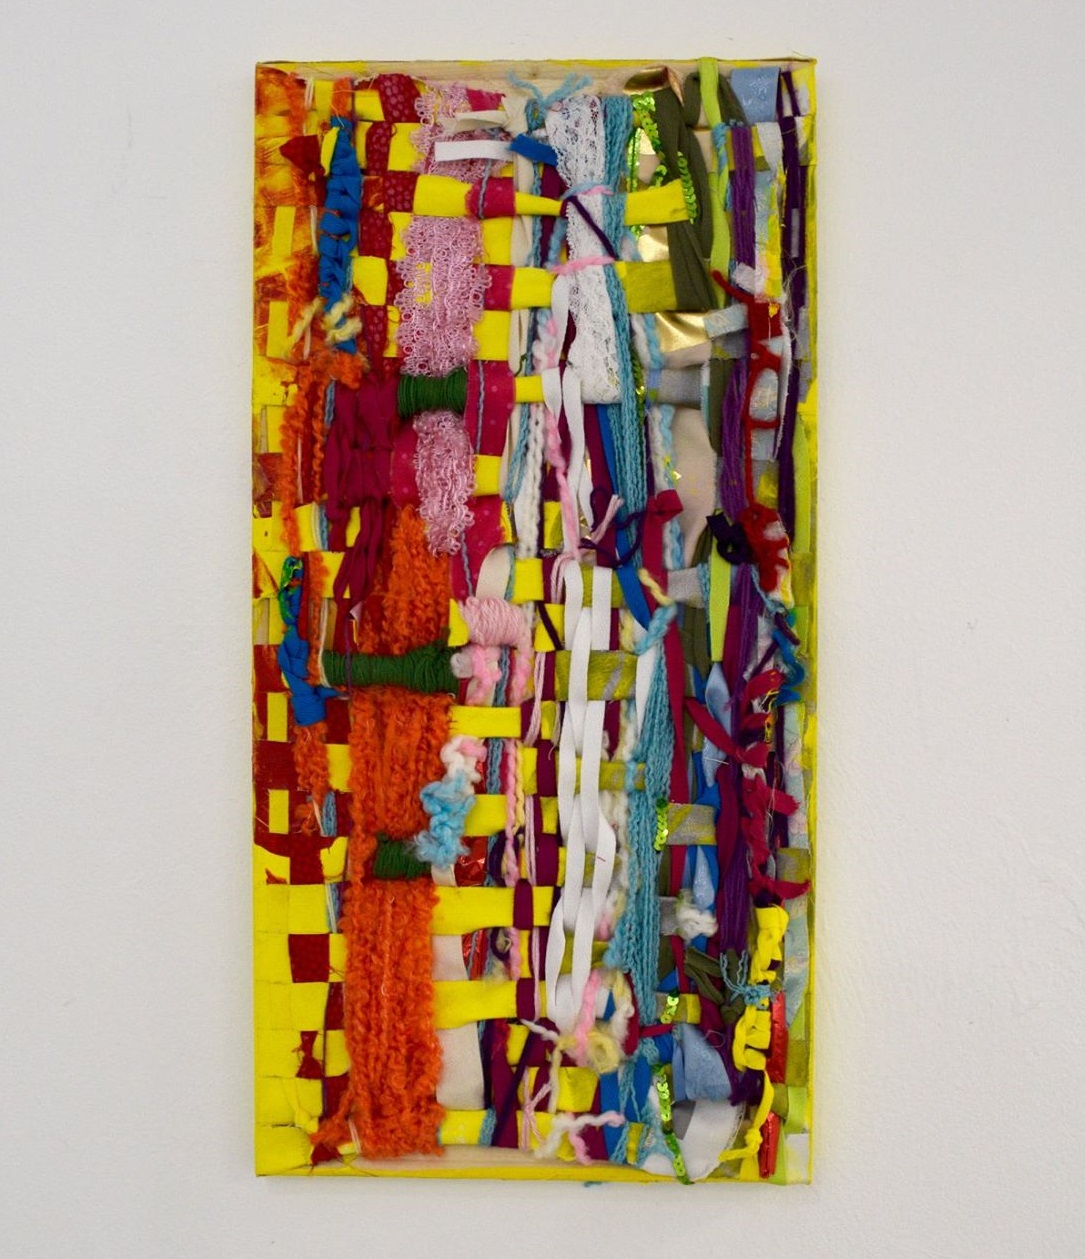 """Linda Ruzga,  Sunday , 2017, Yarn and fabric woven on stretched canvas, 12"""" x 24"""", images courtesy Circle Contemporary"""